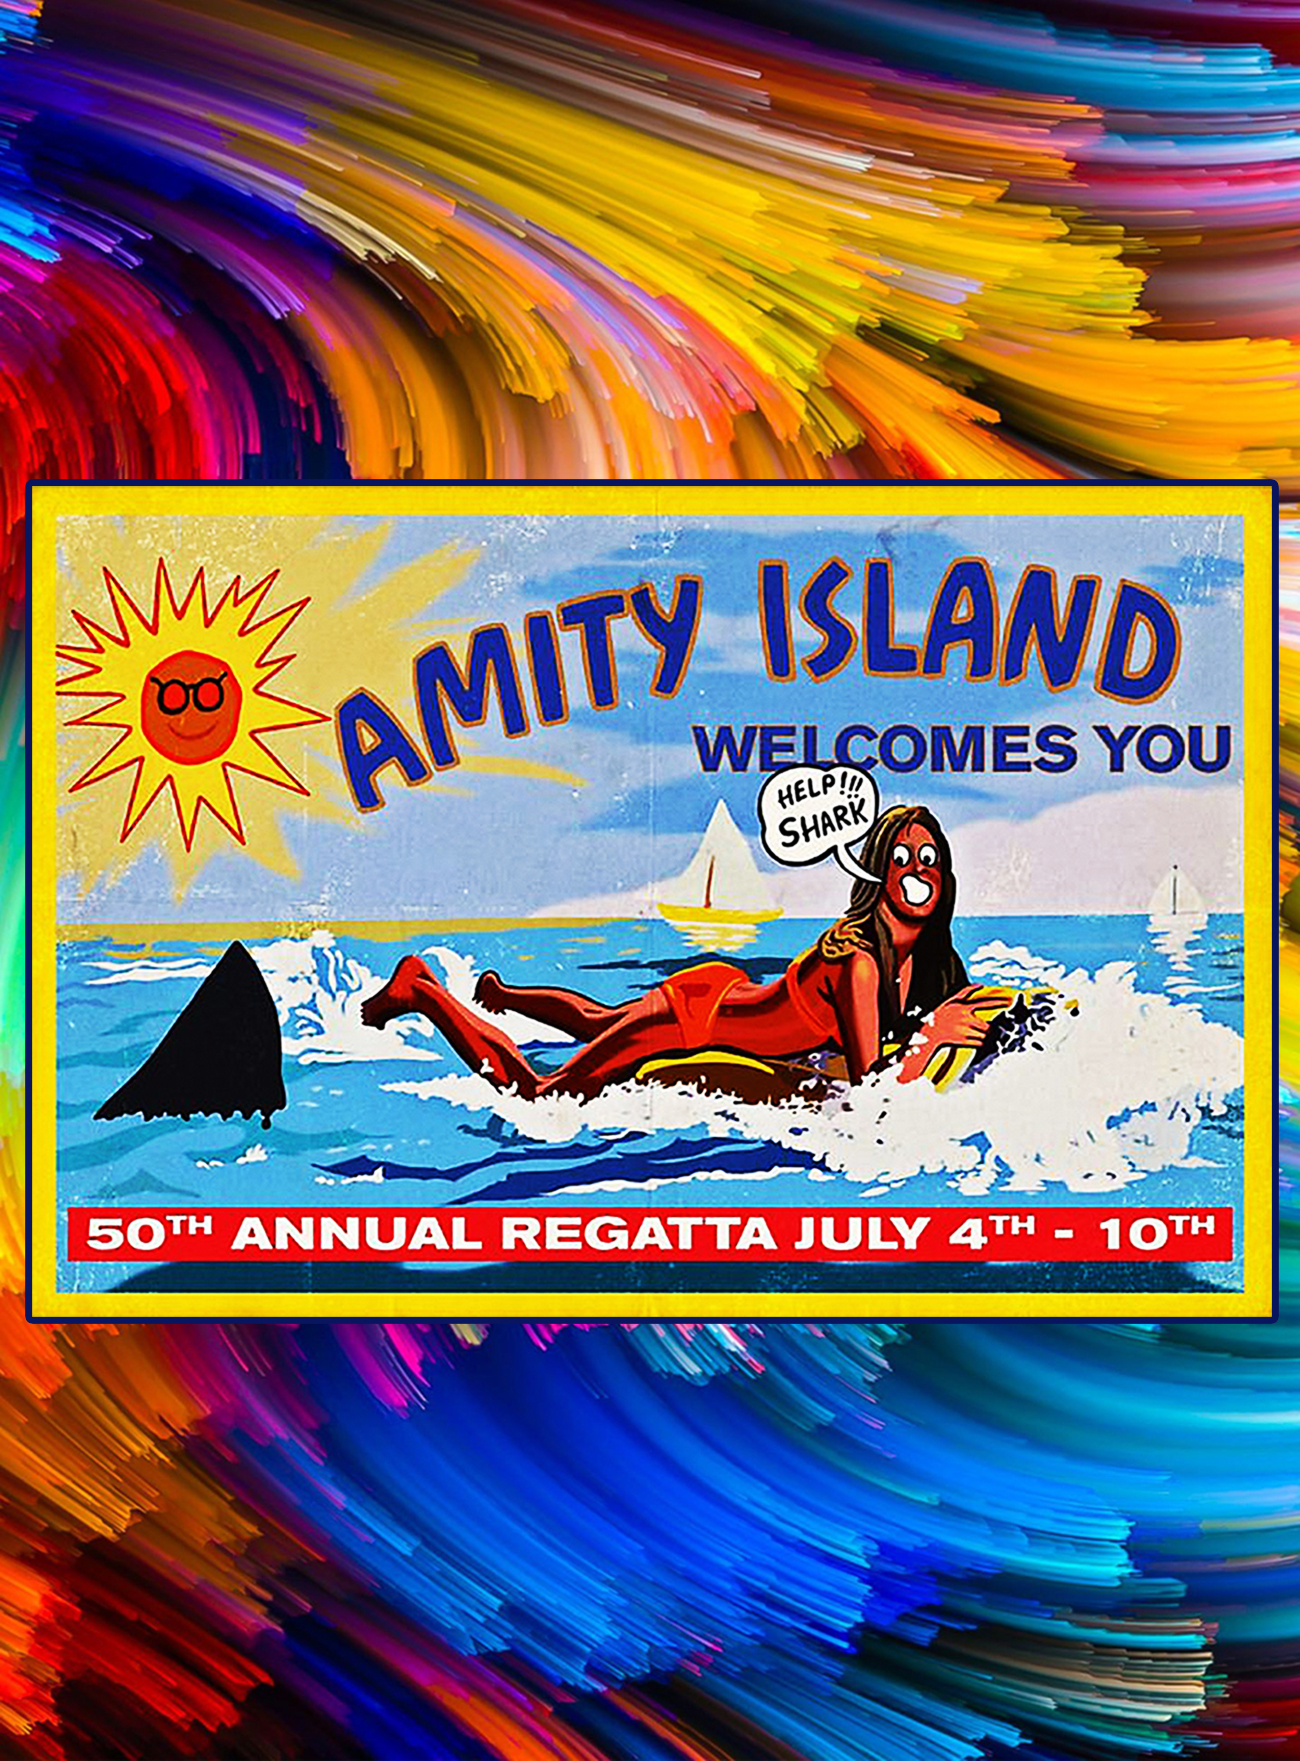 Amity island welcomes you poster - A1